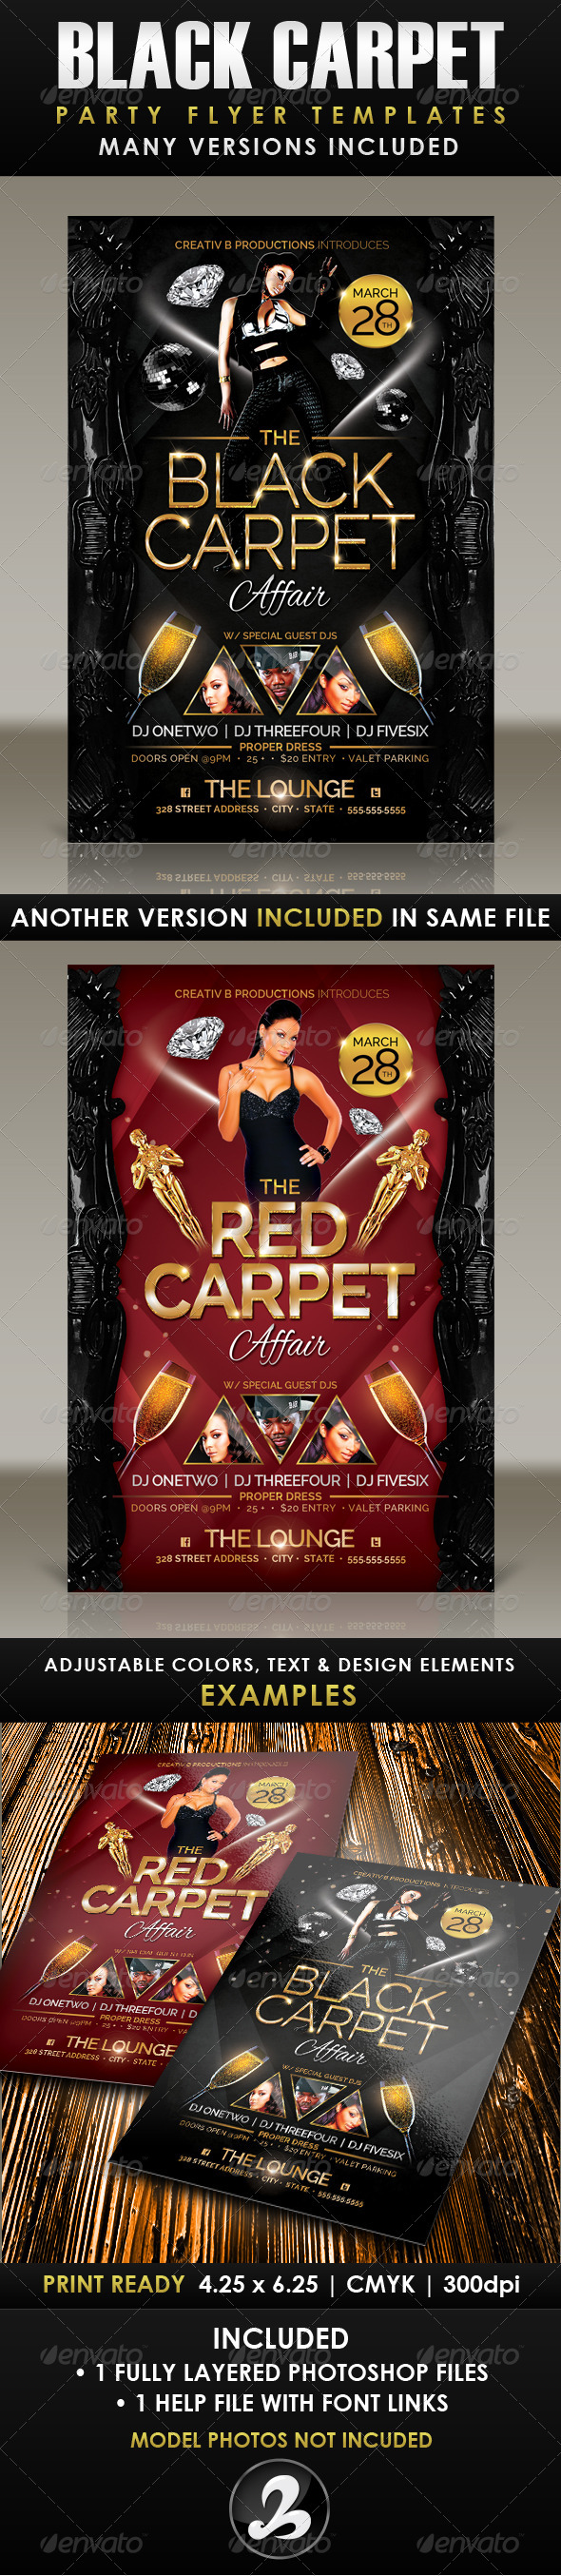 Black Carpet Party Flyer Template - Clubs & Parties Events